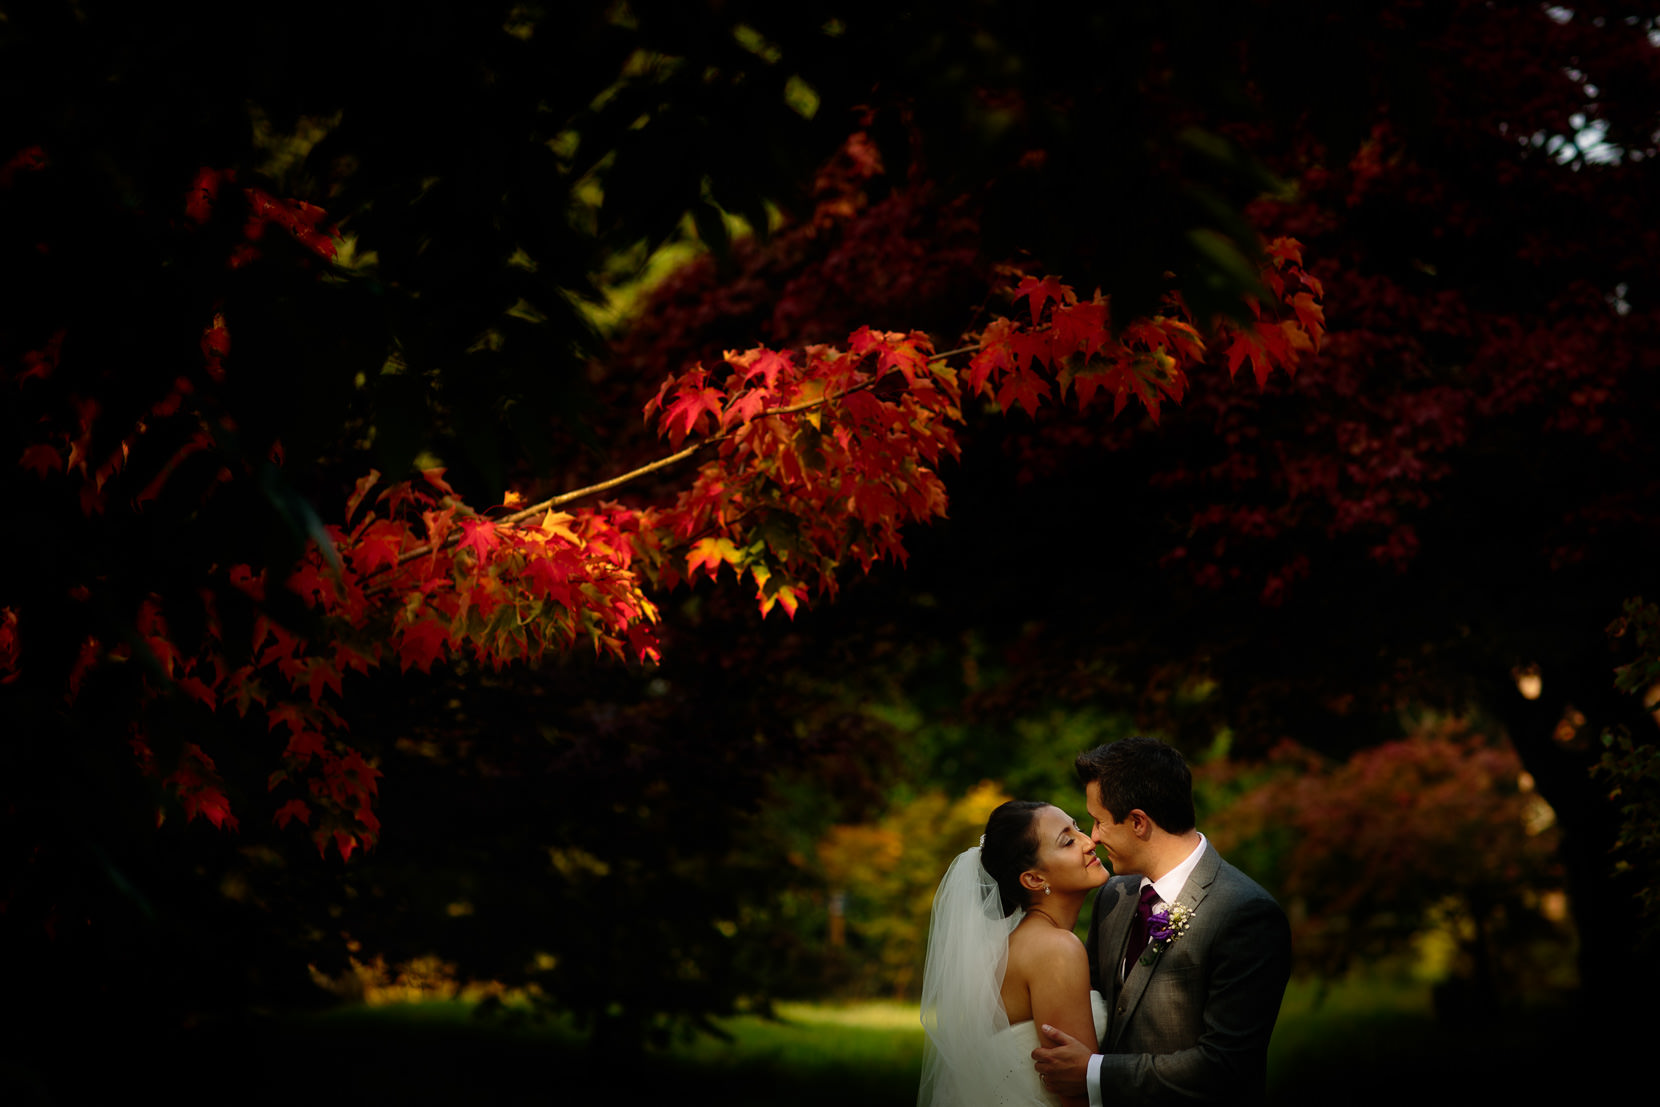 Shropshire Wedding Photography with a beautiful bride and her groom at Combermere Abbey